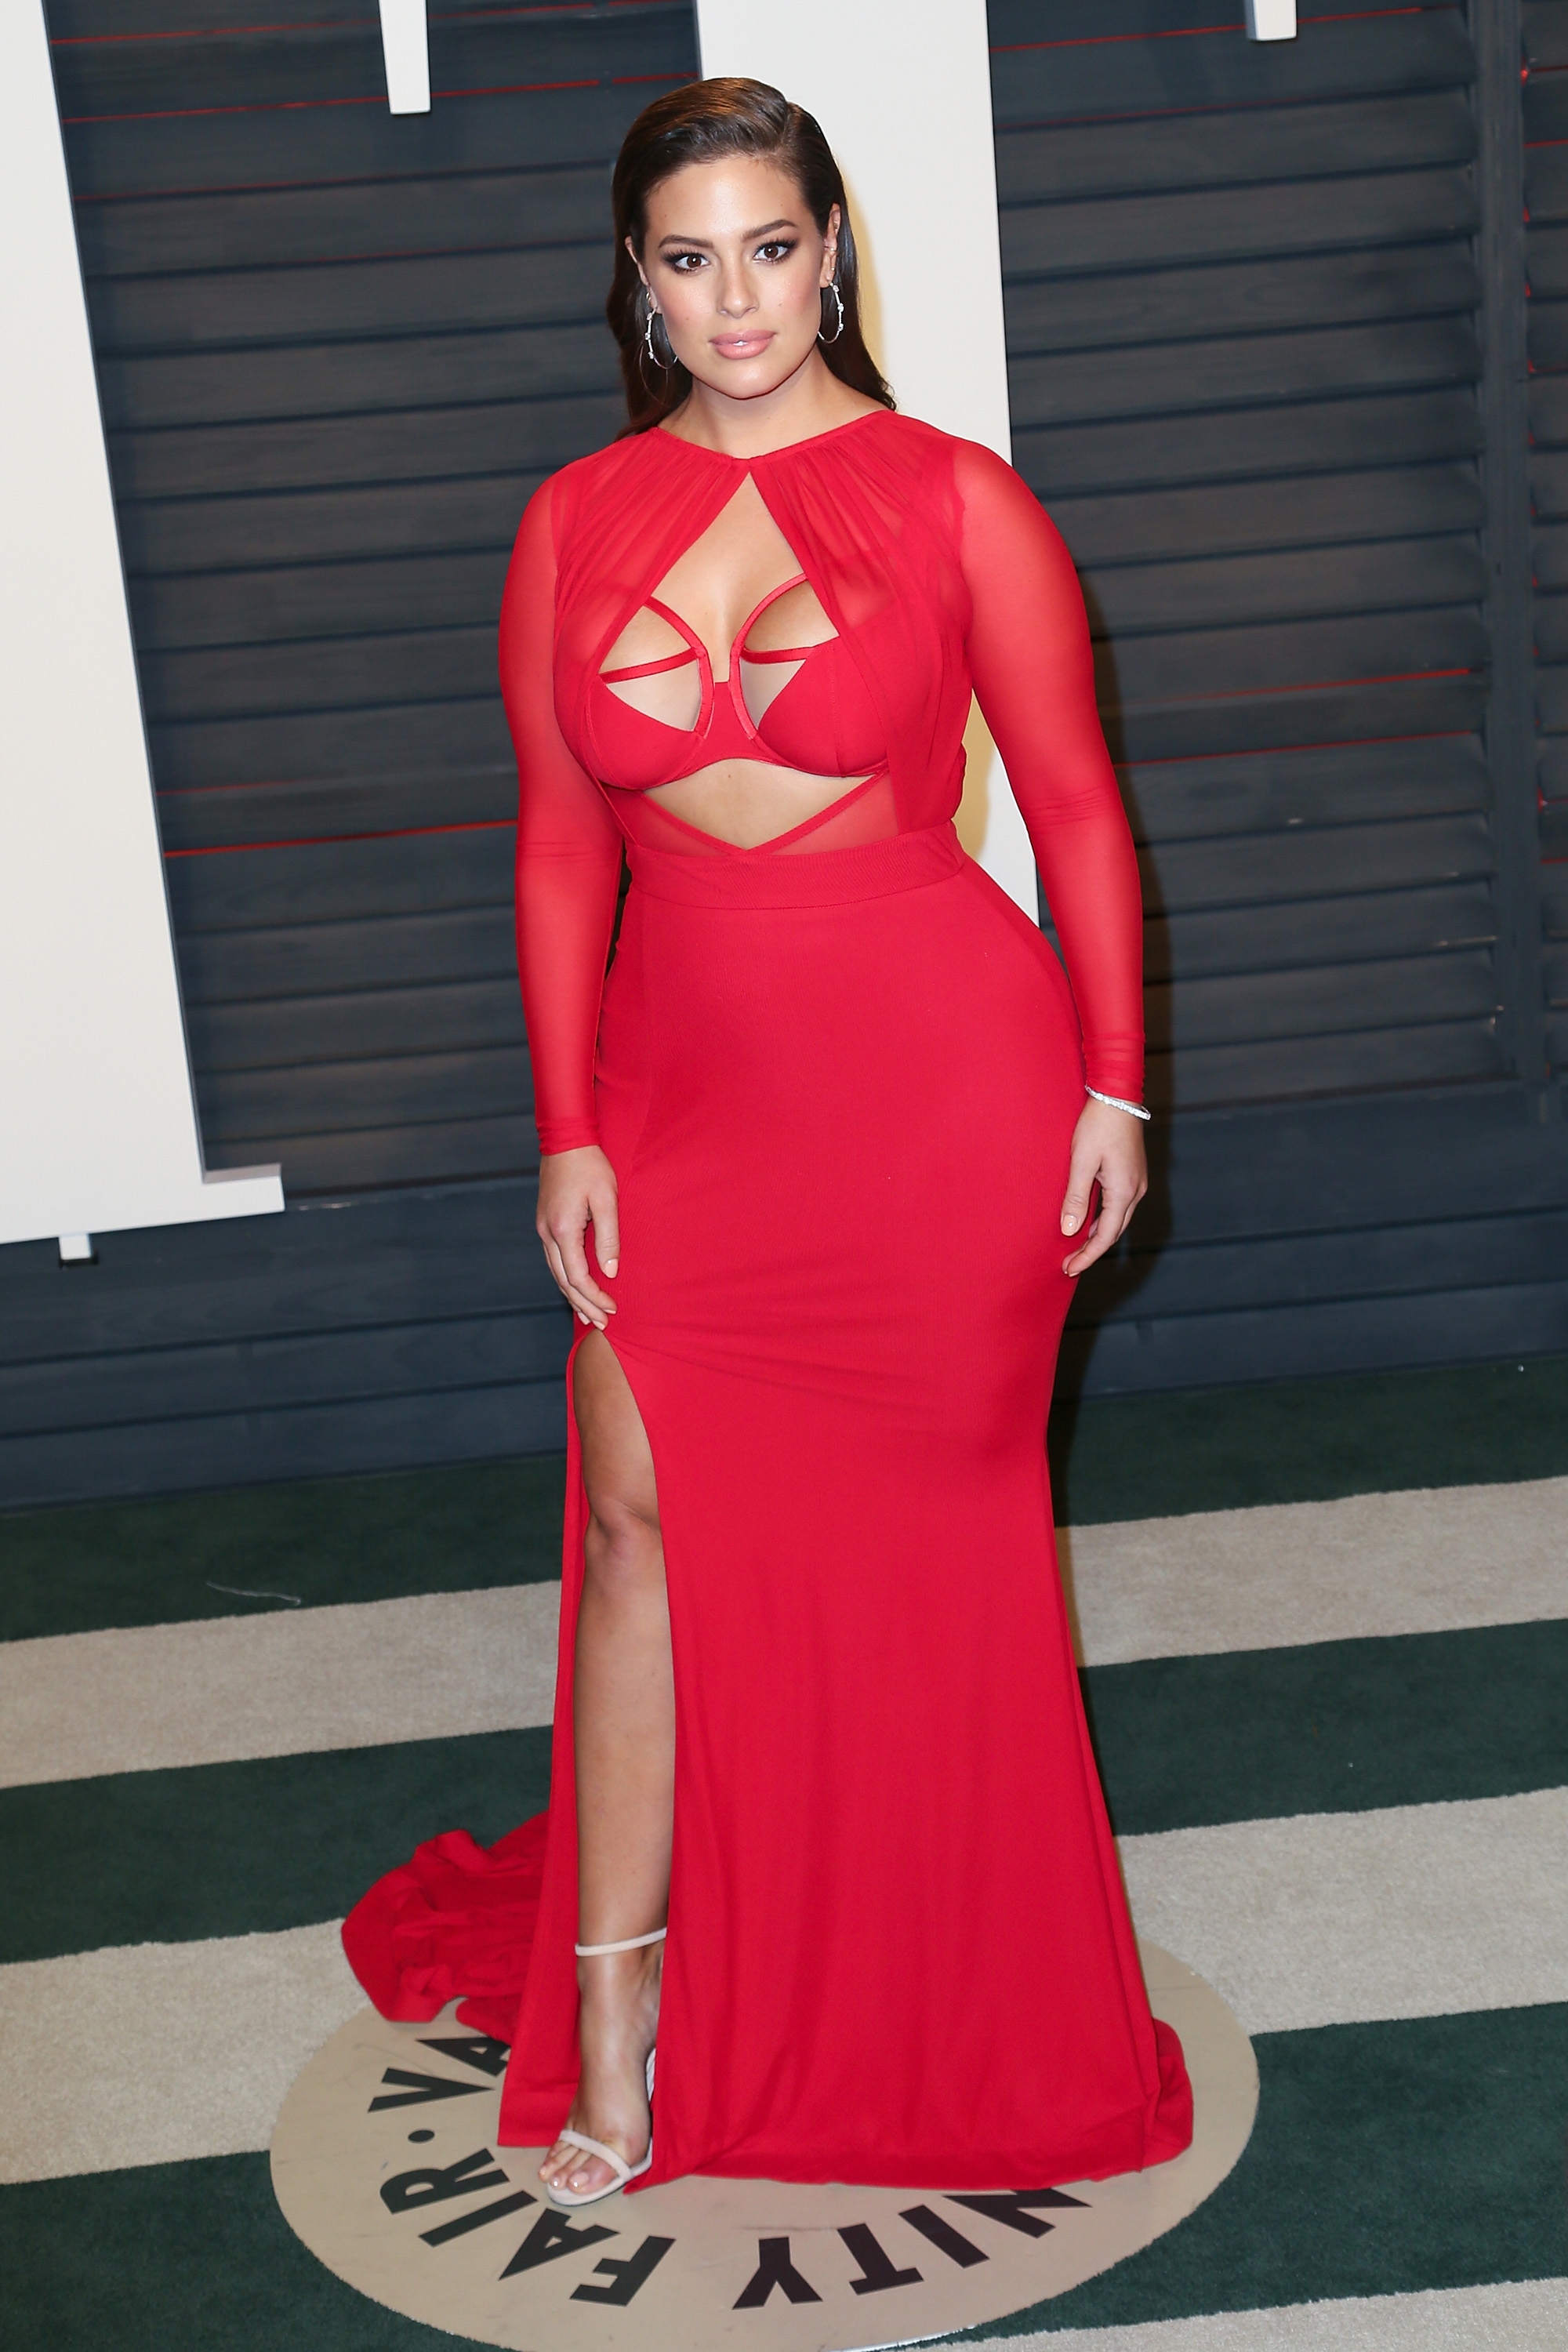 Angry Fans Are Calling Photoshop on Ashley Graham's 'Maxim' Cover